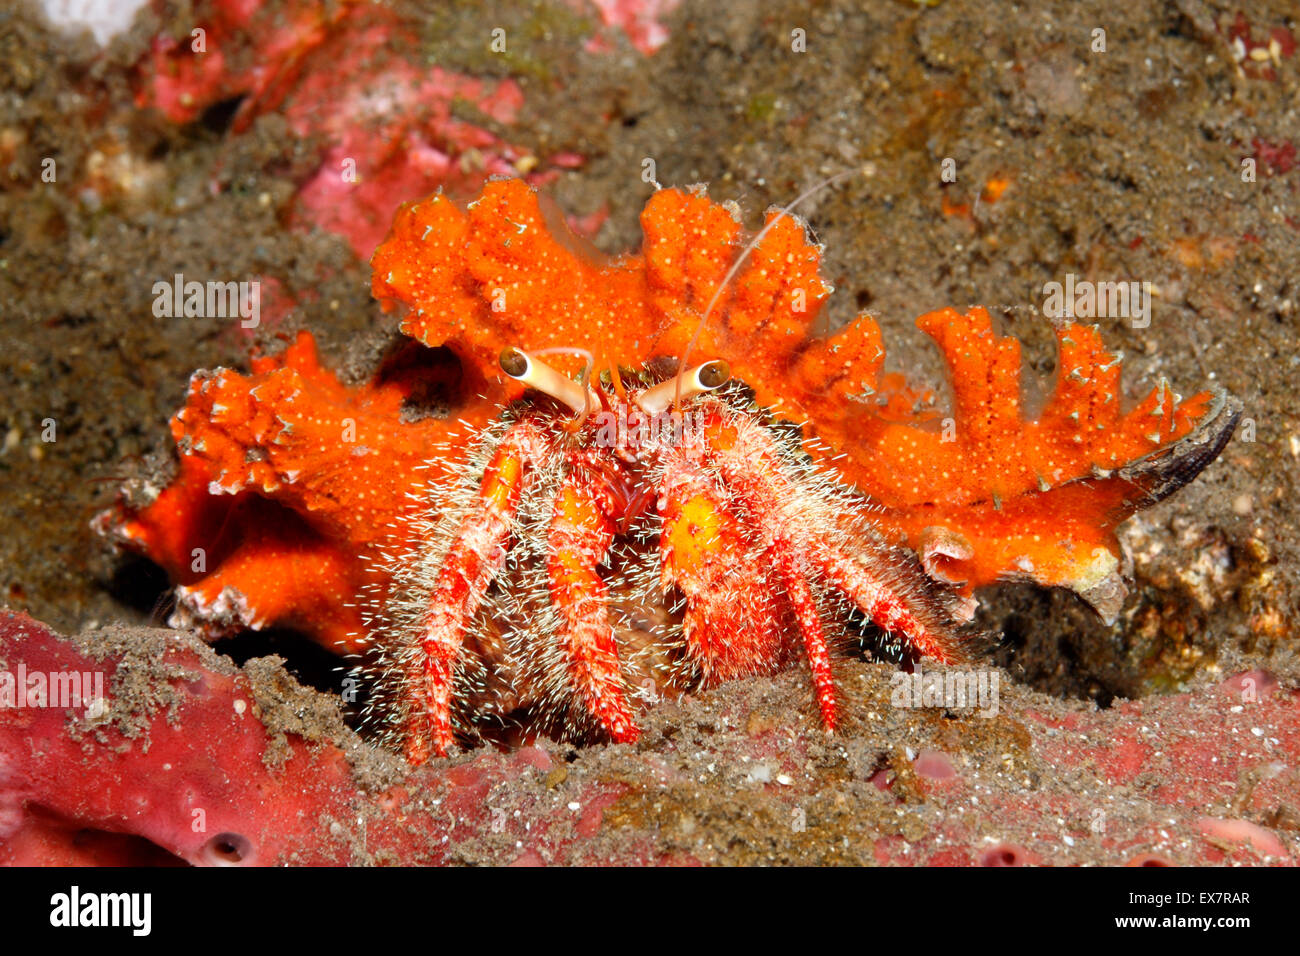 A marine hairy red hermit crab, Dardanus lagopdes. Tulamben, Bali, Indonesia. Bali Sea, Indian Ocean - Stock Image